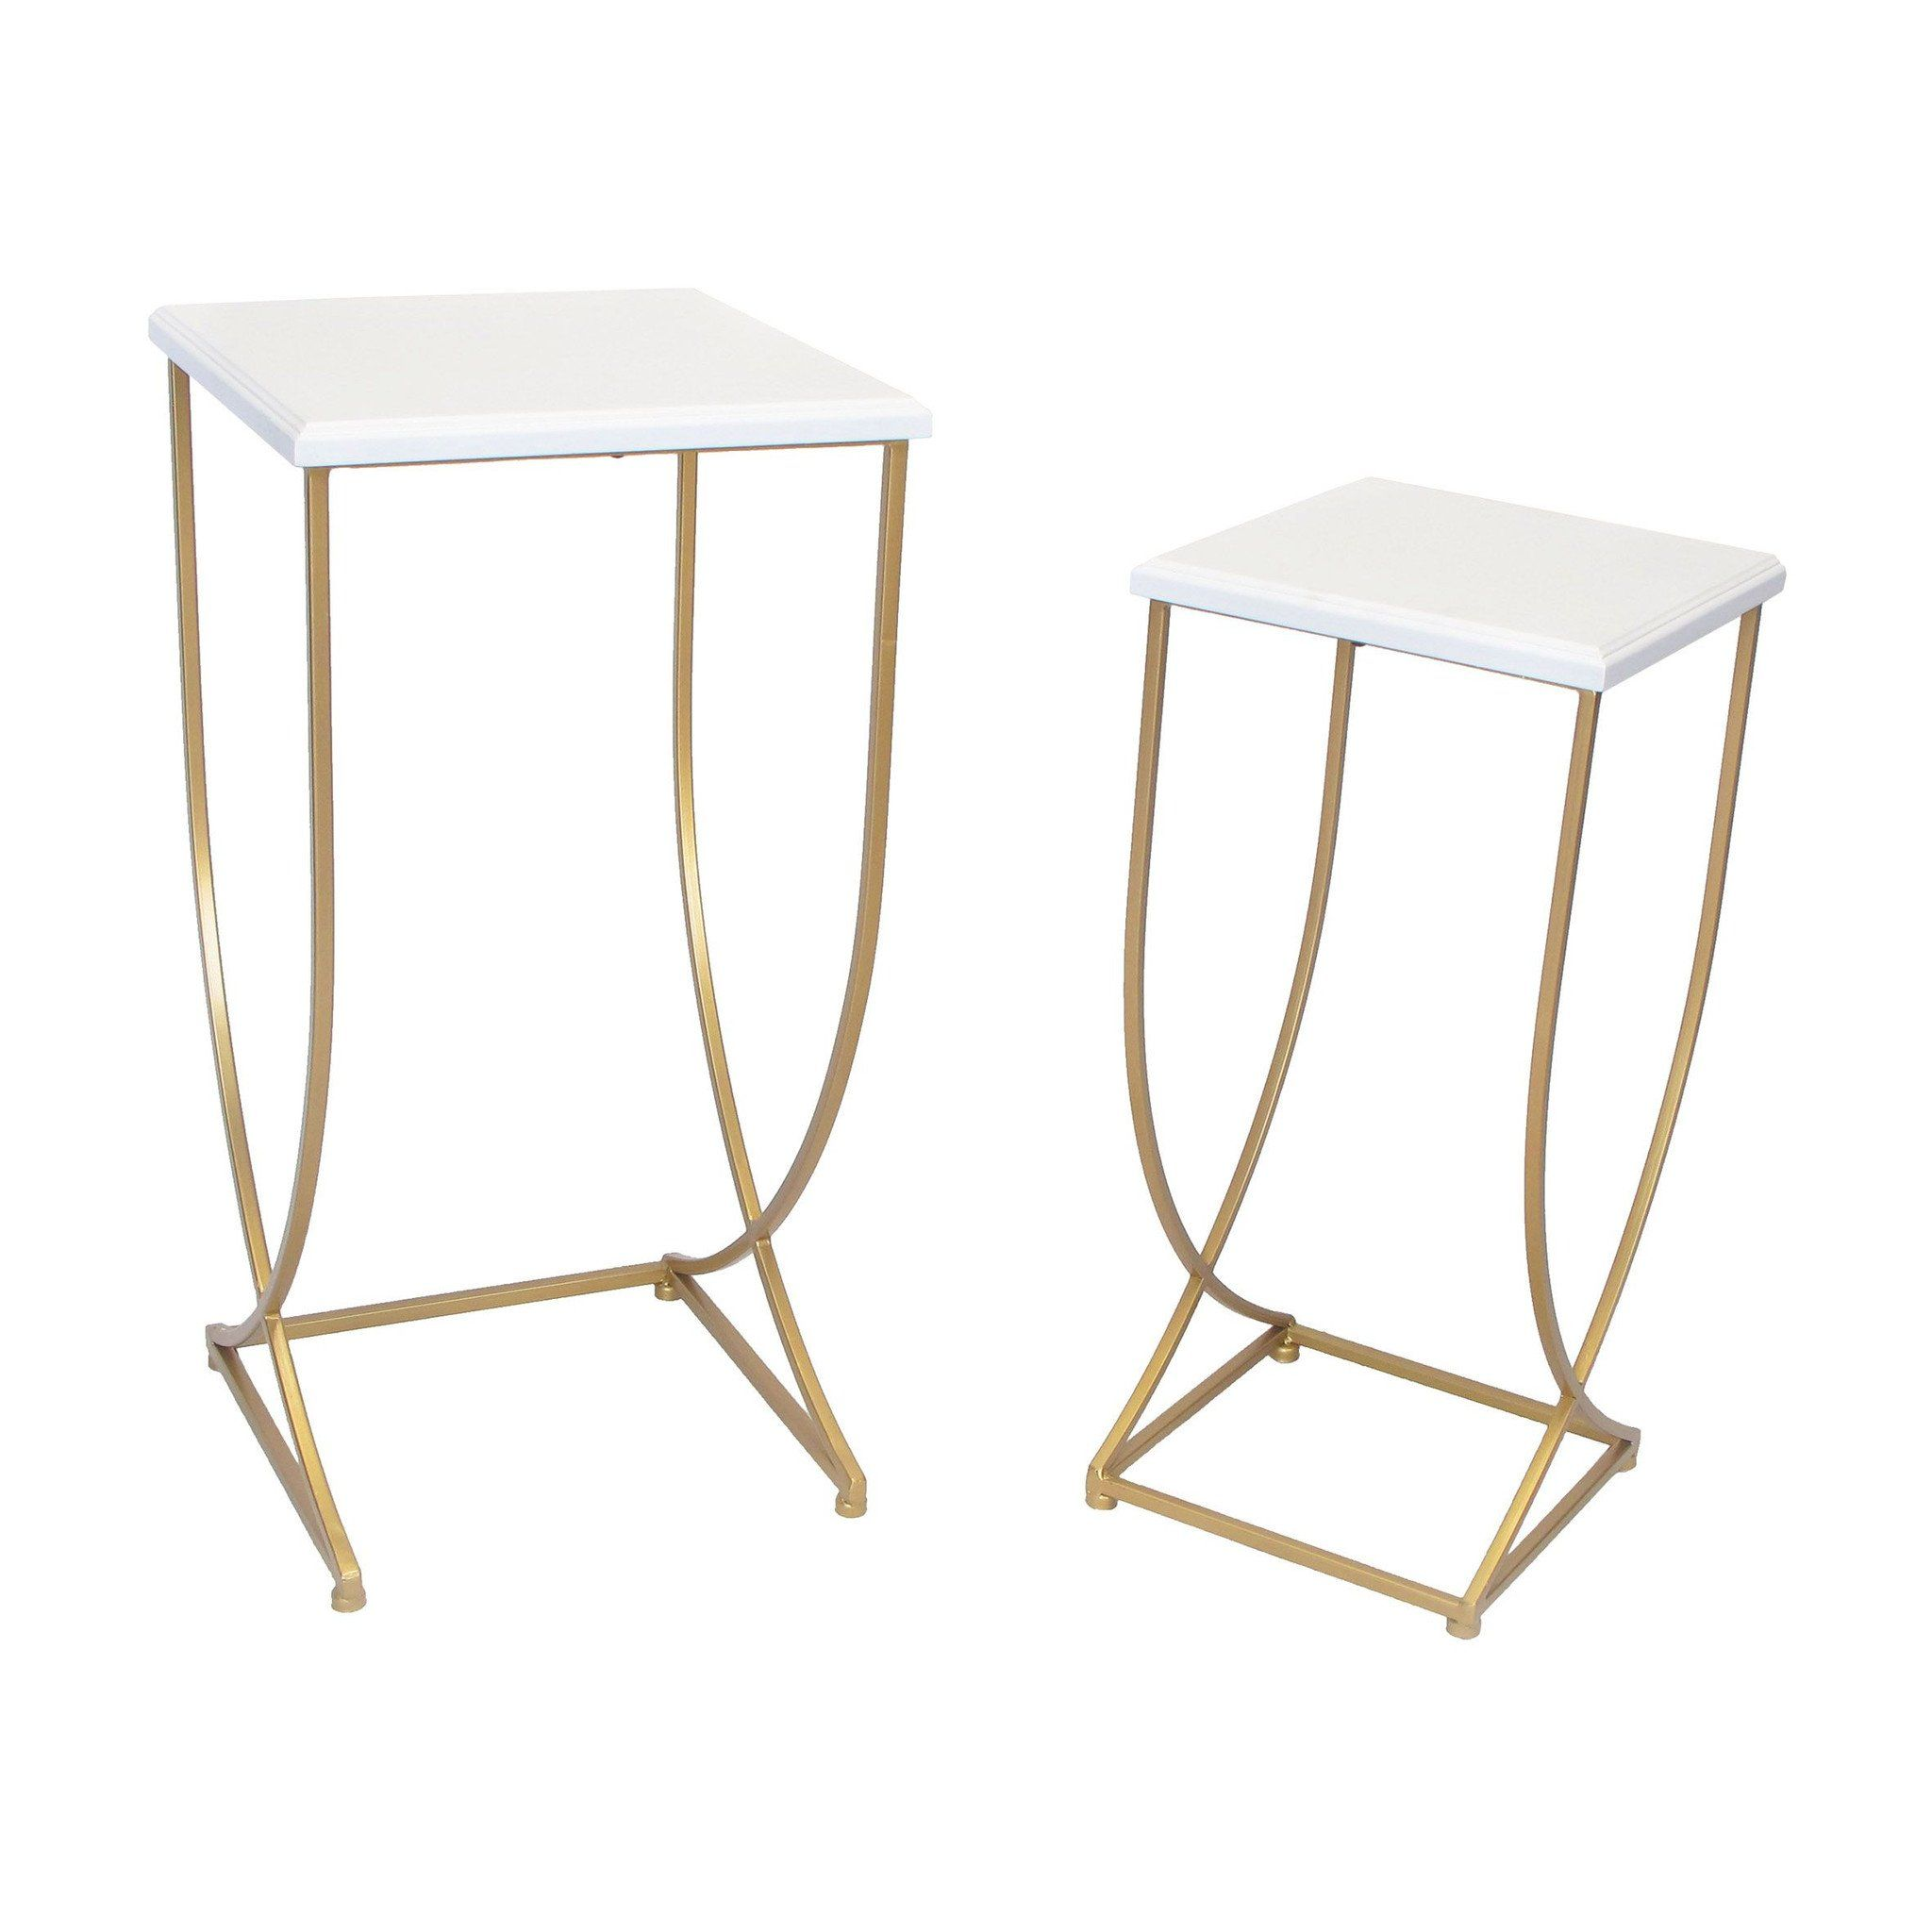 gold metal tall nesting side table set with white top everything accent skinny console cabinet aluminium door threshold barnwood coffee nic umbrella tiffany pond lily lamp hooker